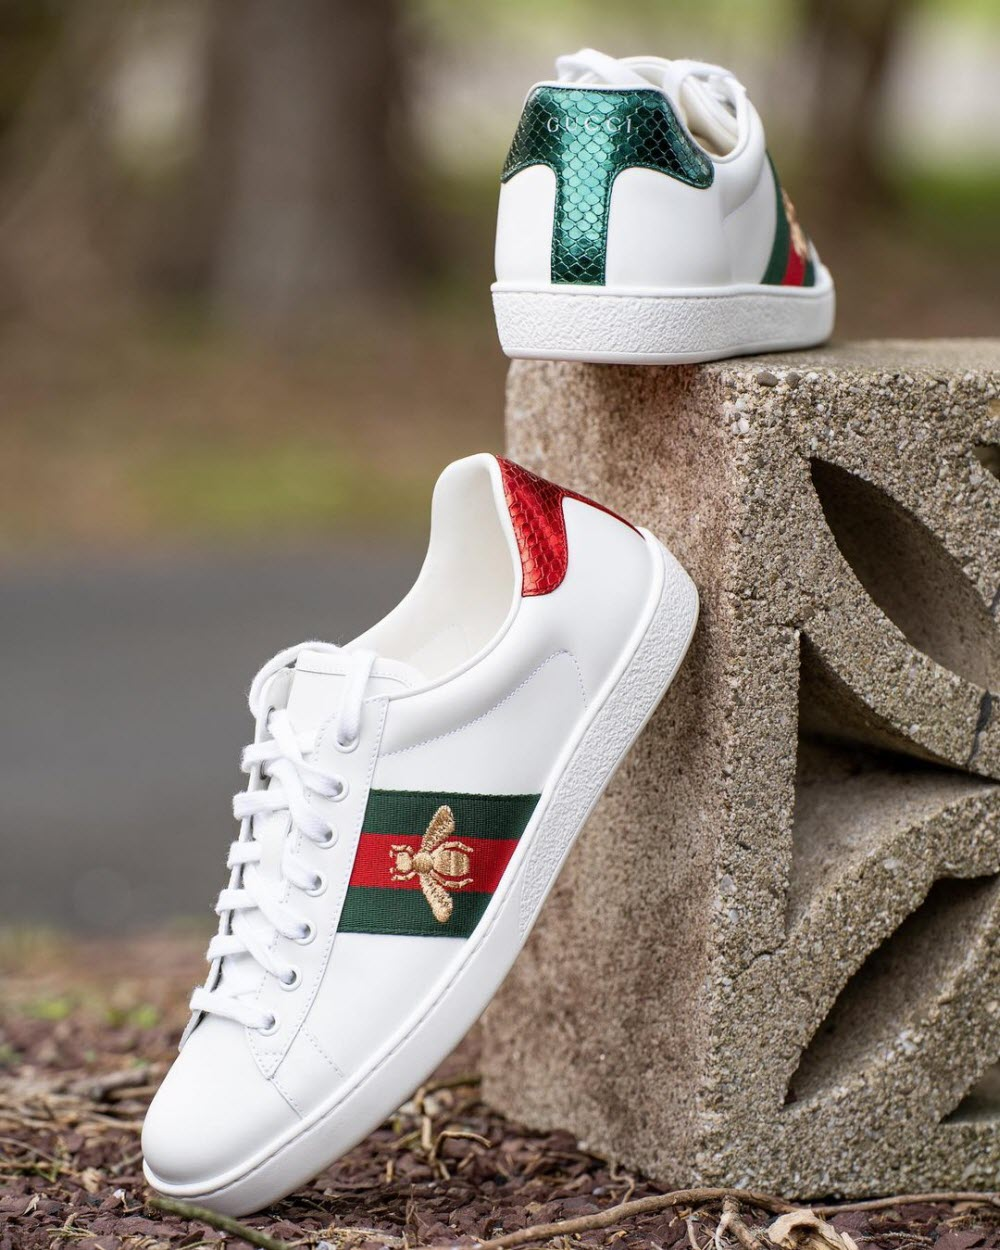 Gucci Ace Women Sneakers in White with Bee Embroidery